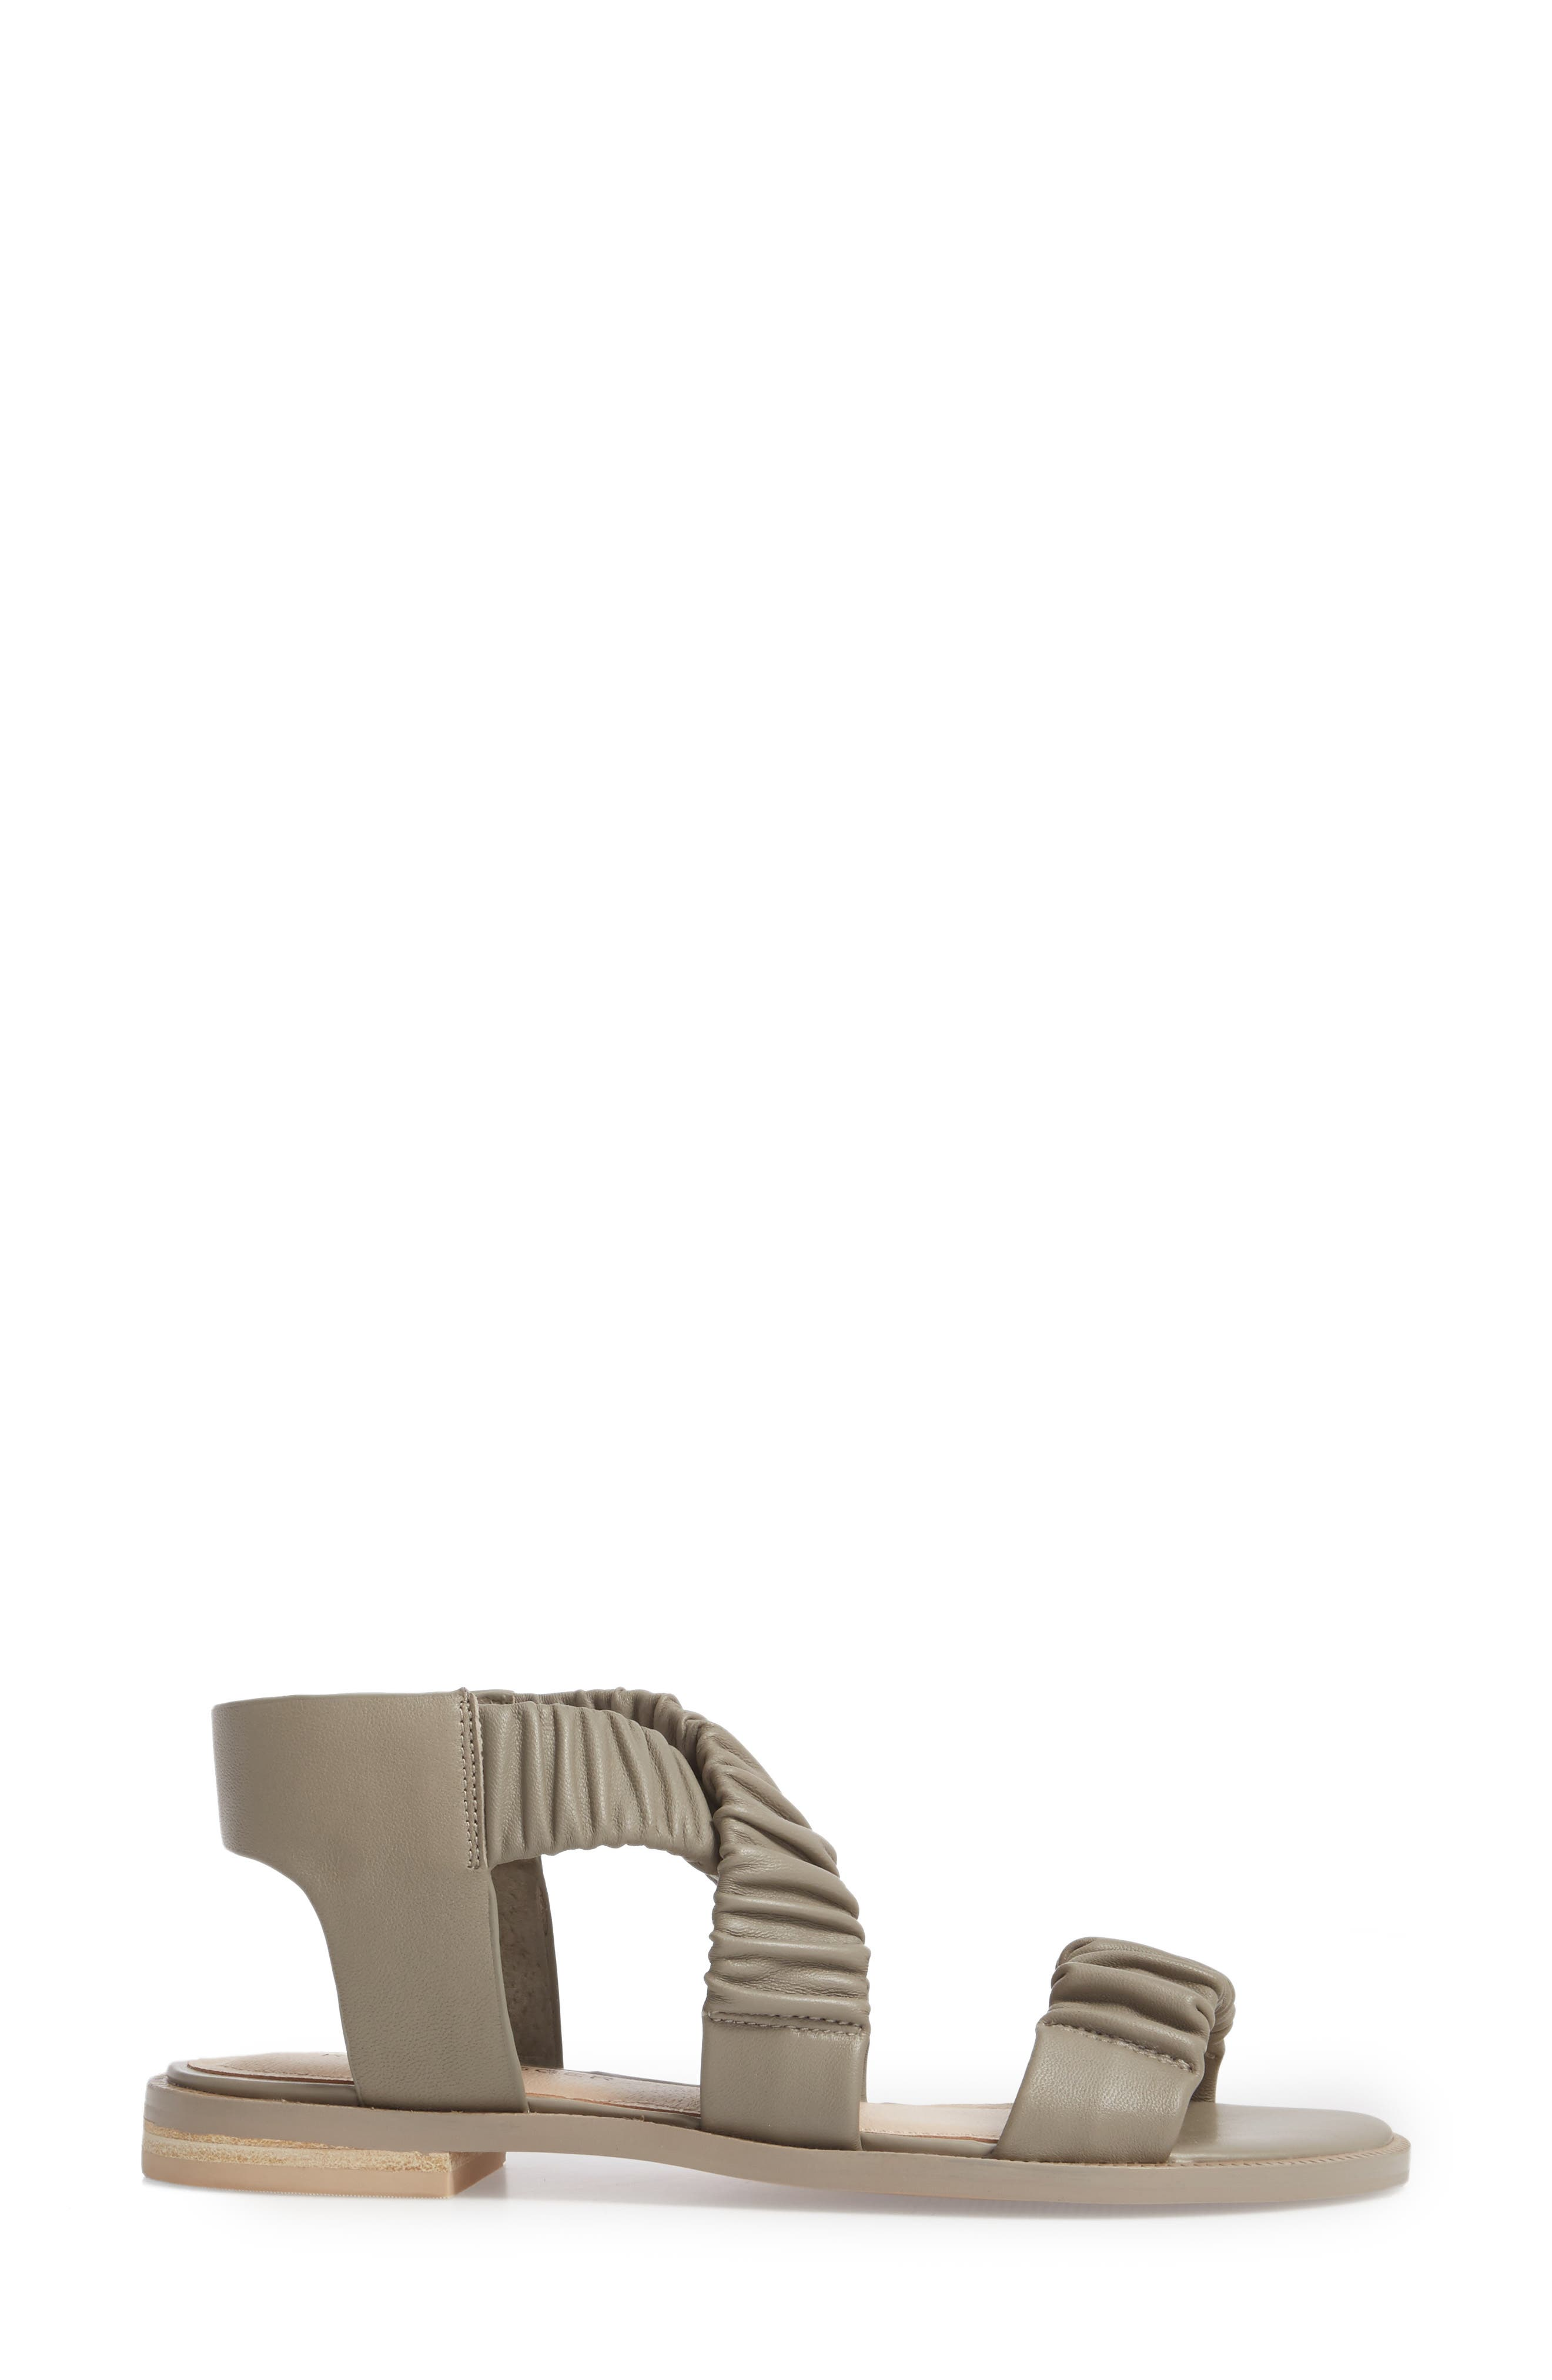 Ryder Pleated Flat Sandal,                             Alternate thumbnail 3, color,                             Clove Leather